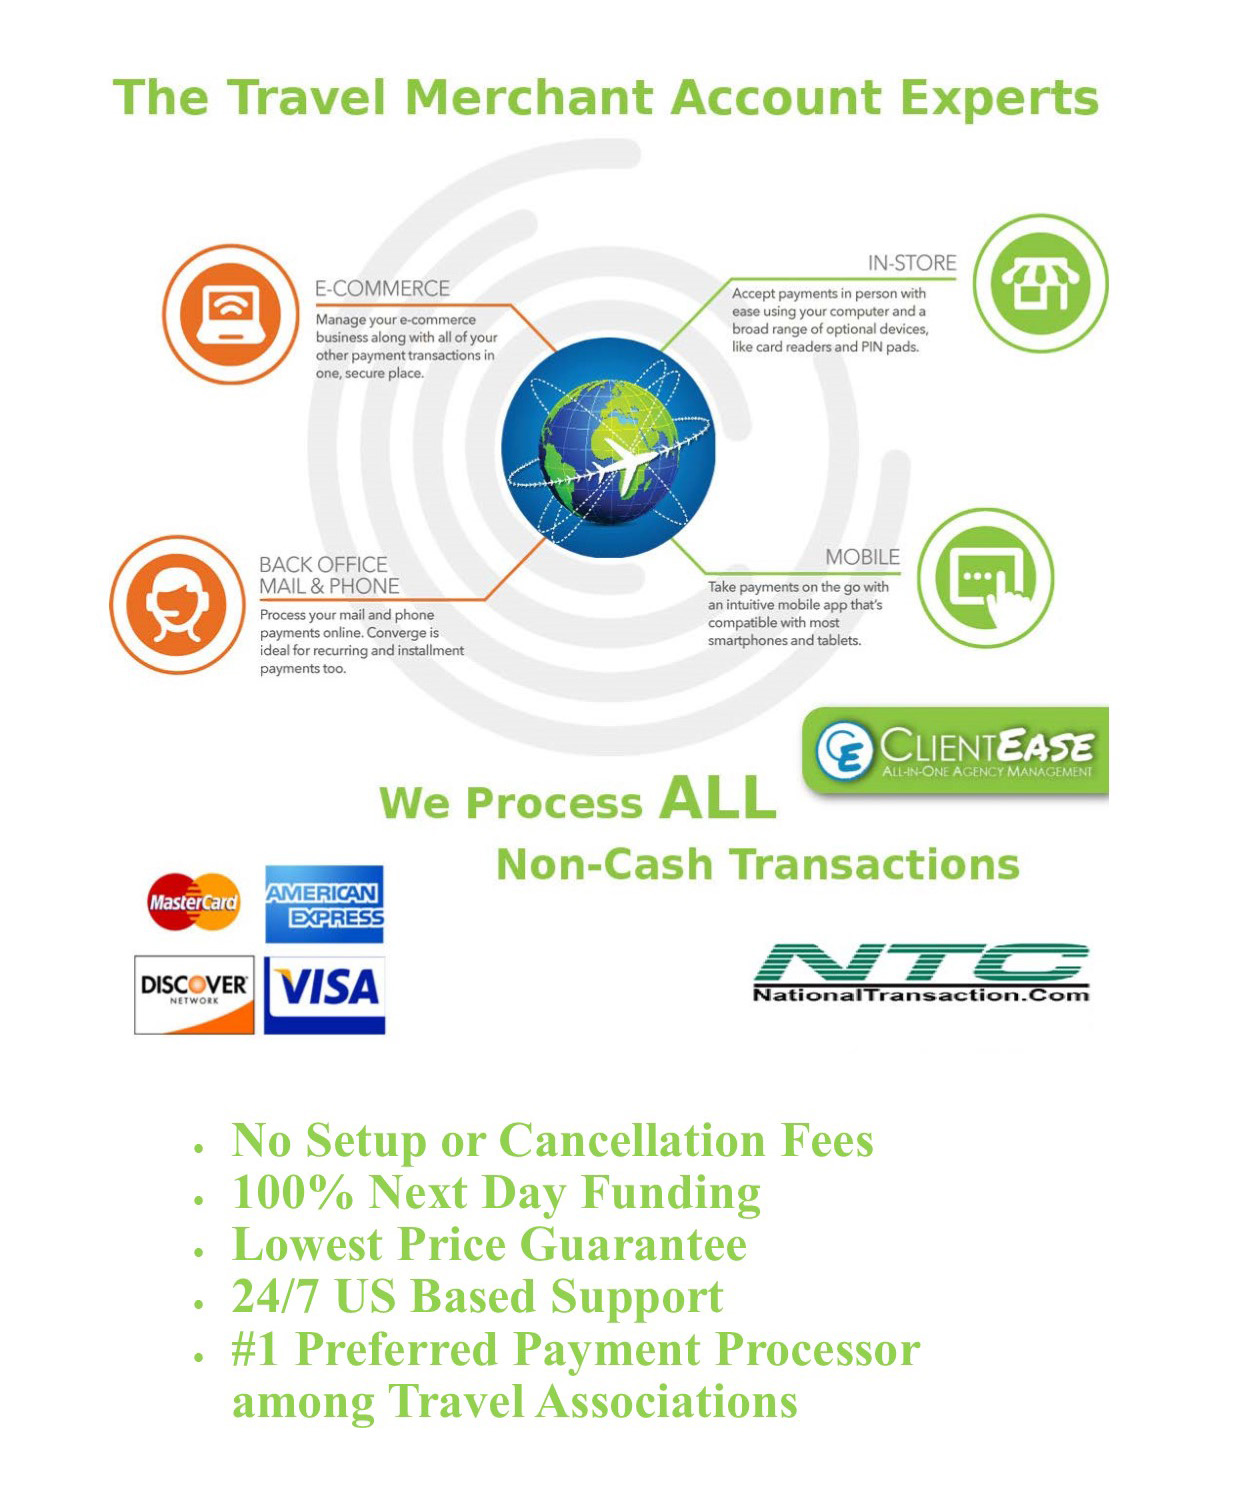 The Travel Merchant Account Experts